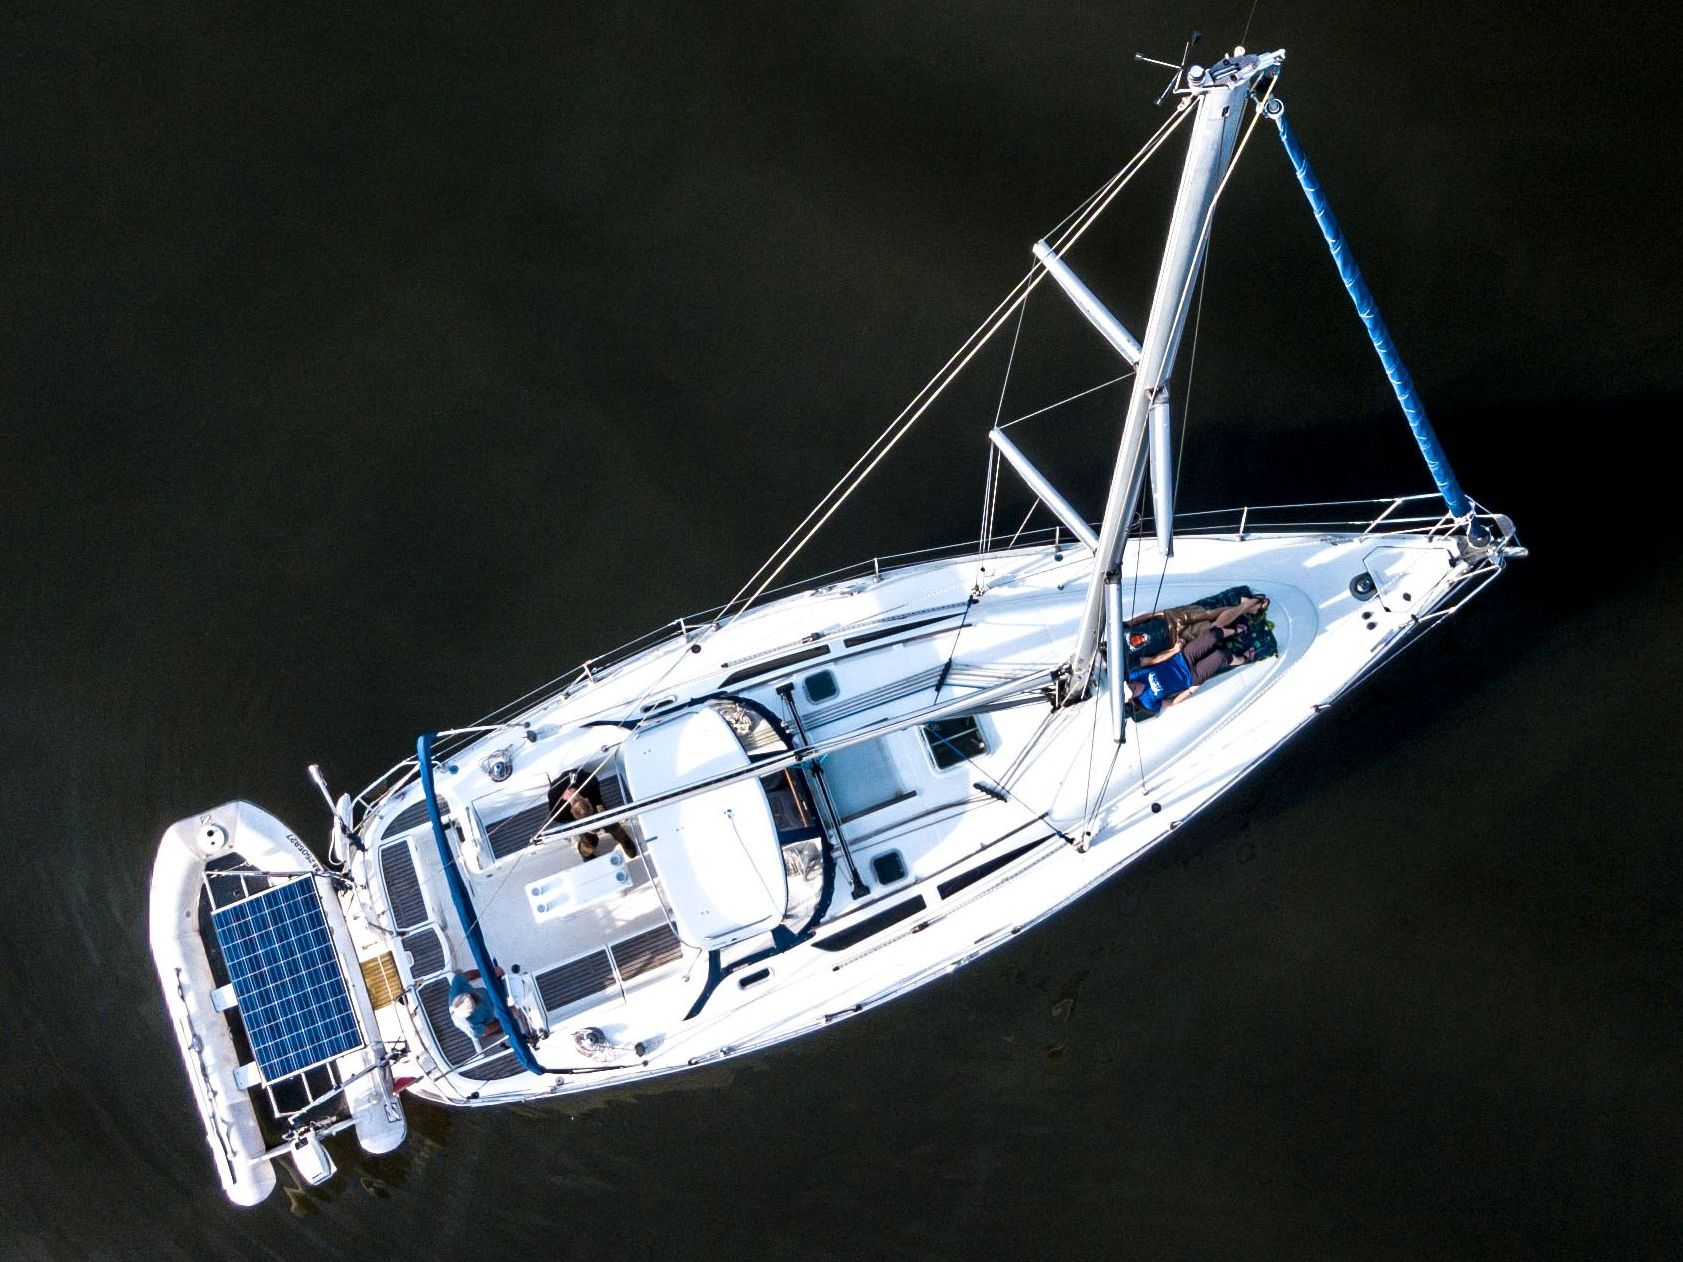 Birds-eye view with Guests on deck